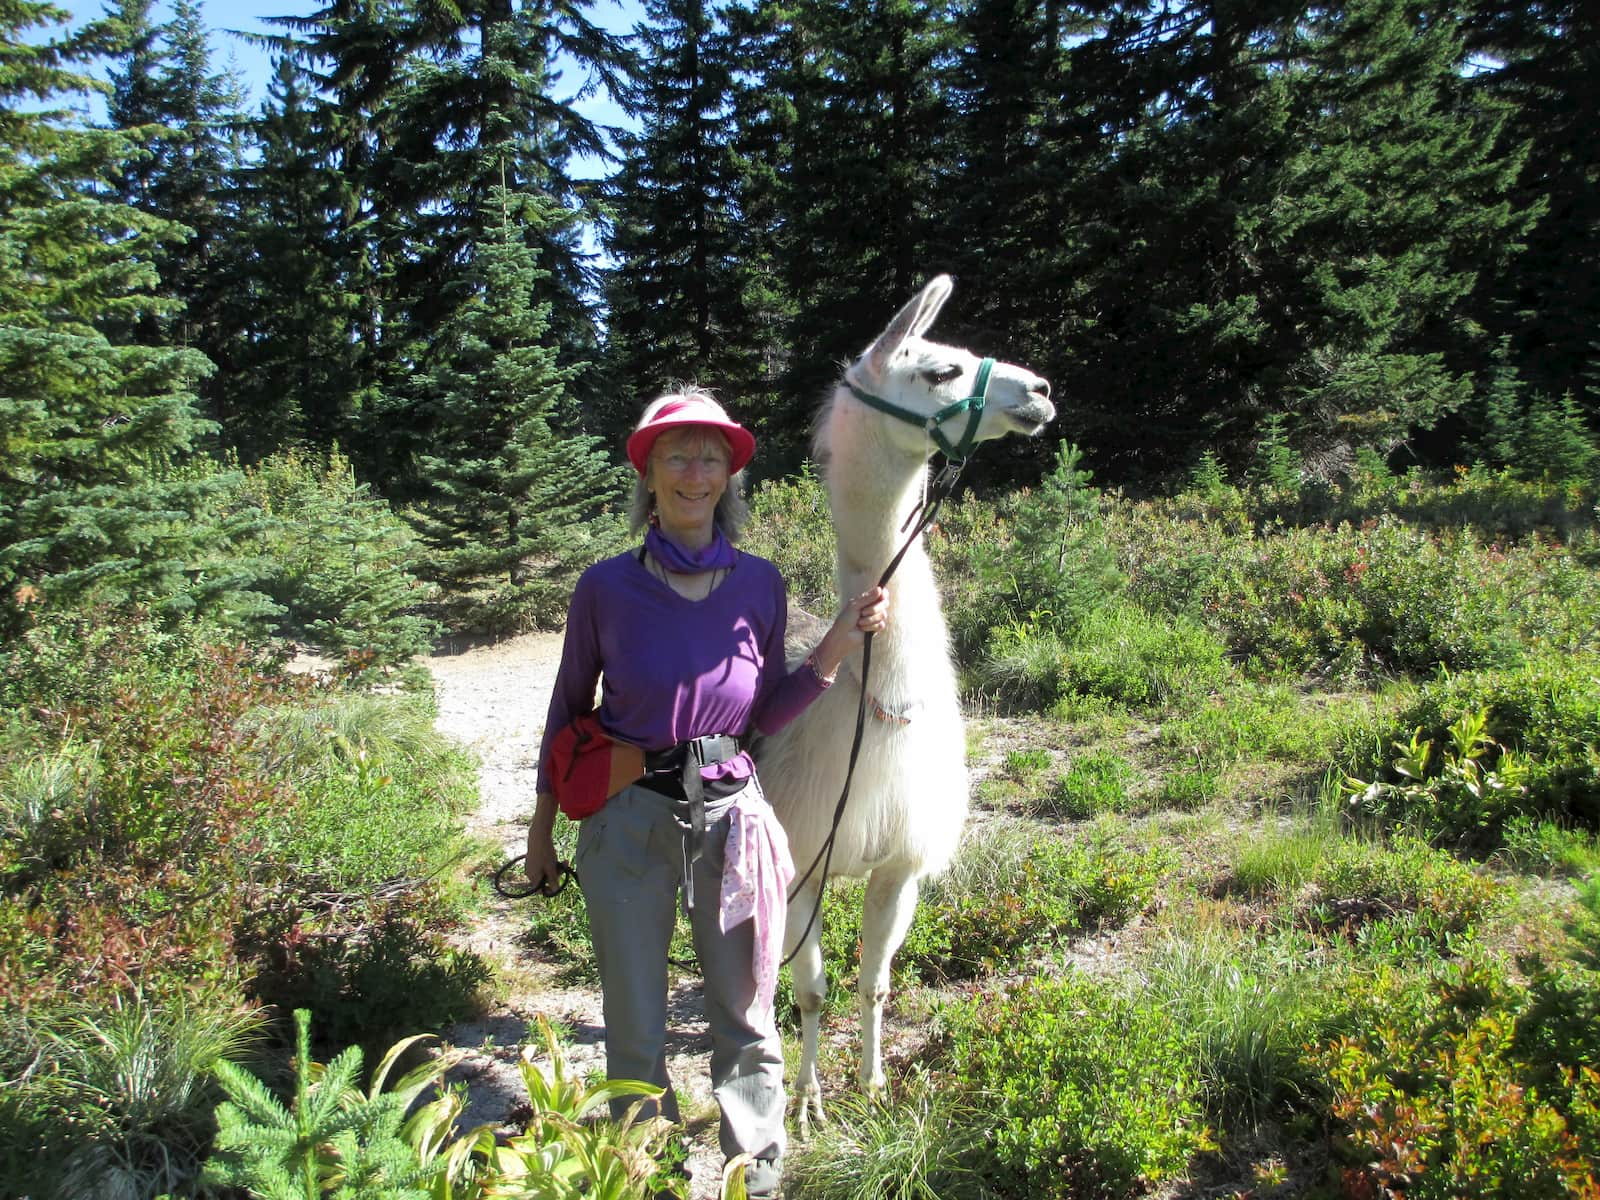 Female hiker with visor and fanny pack poses with a llama in the backcountry.